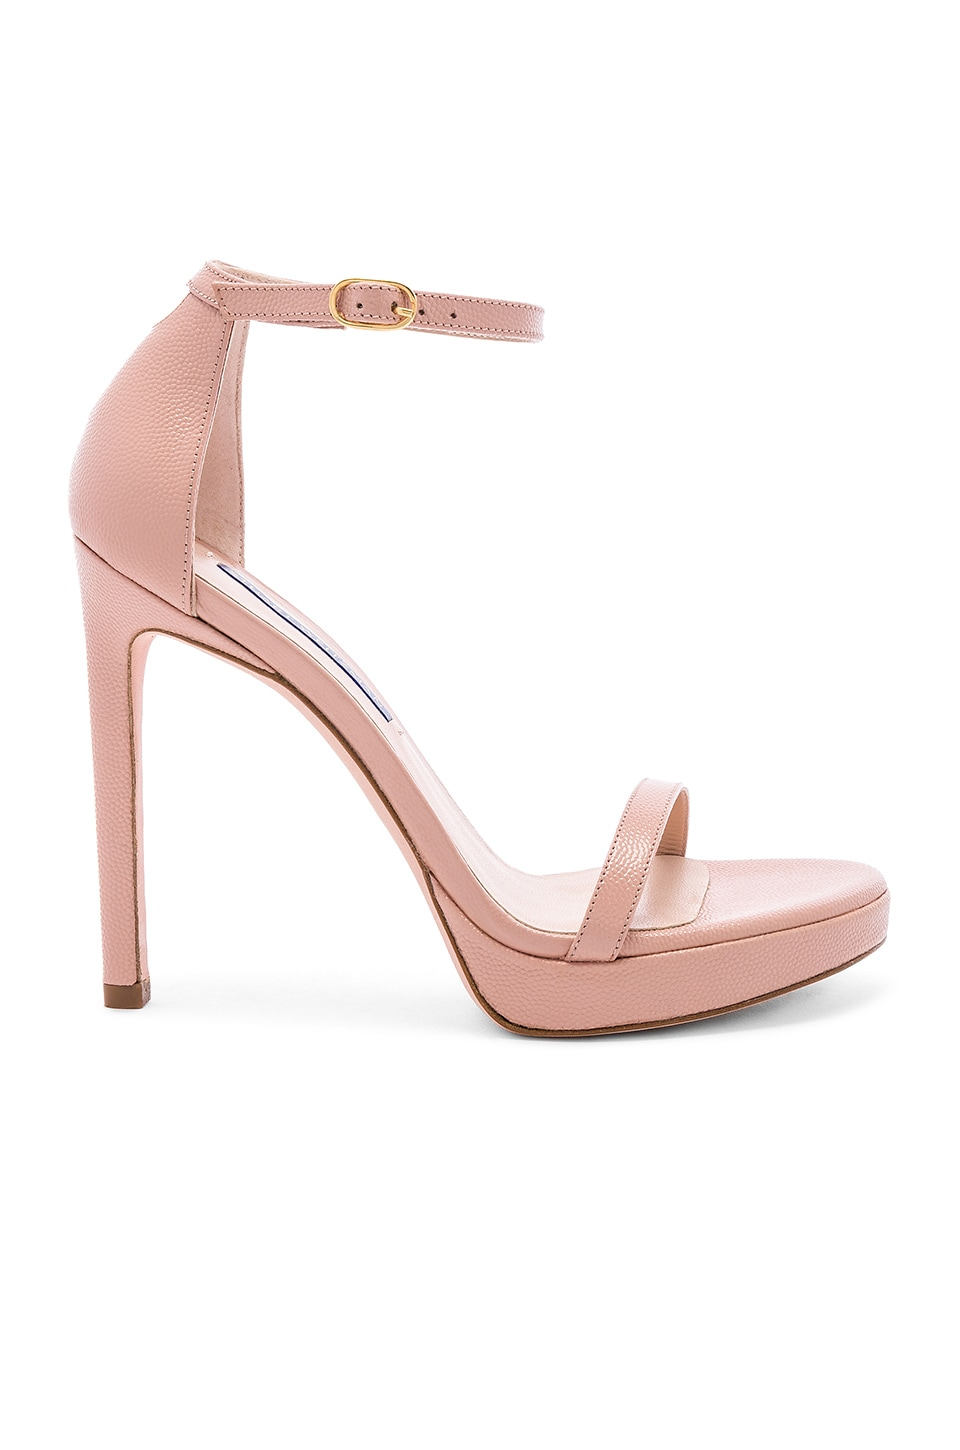 Stuart Weitzman Nudist Disco Heel in Buff Blush